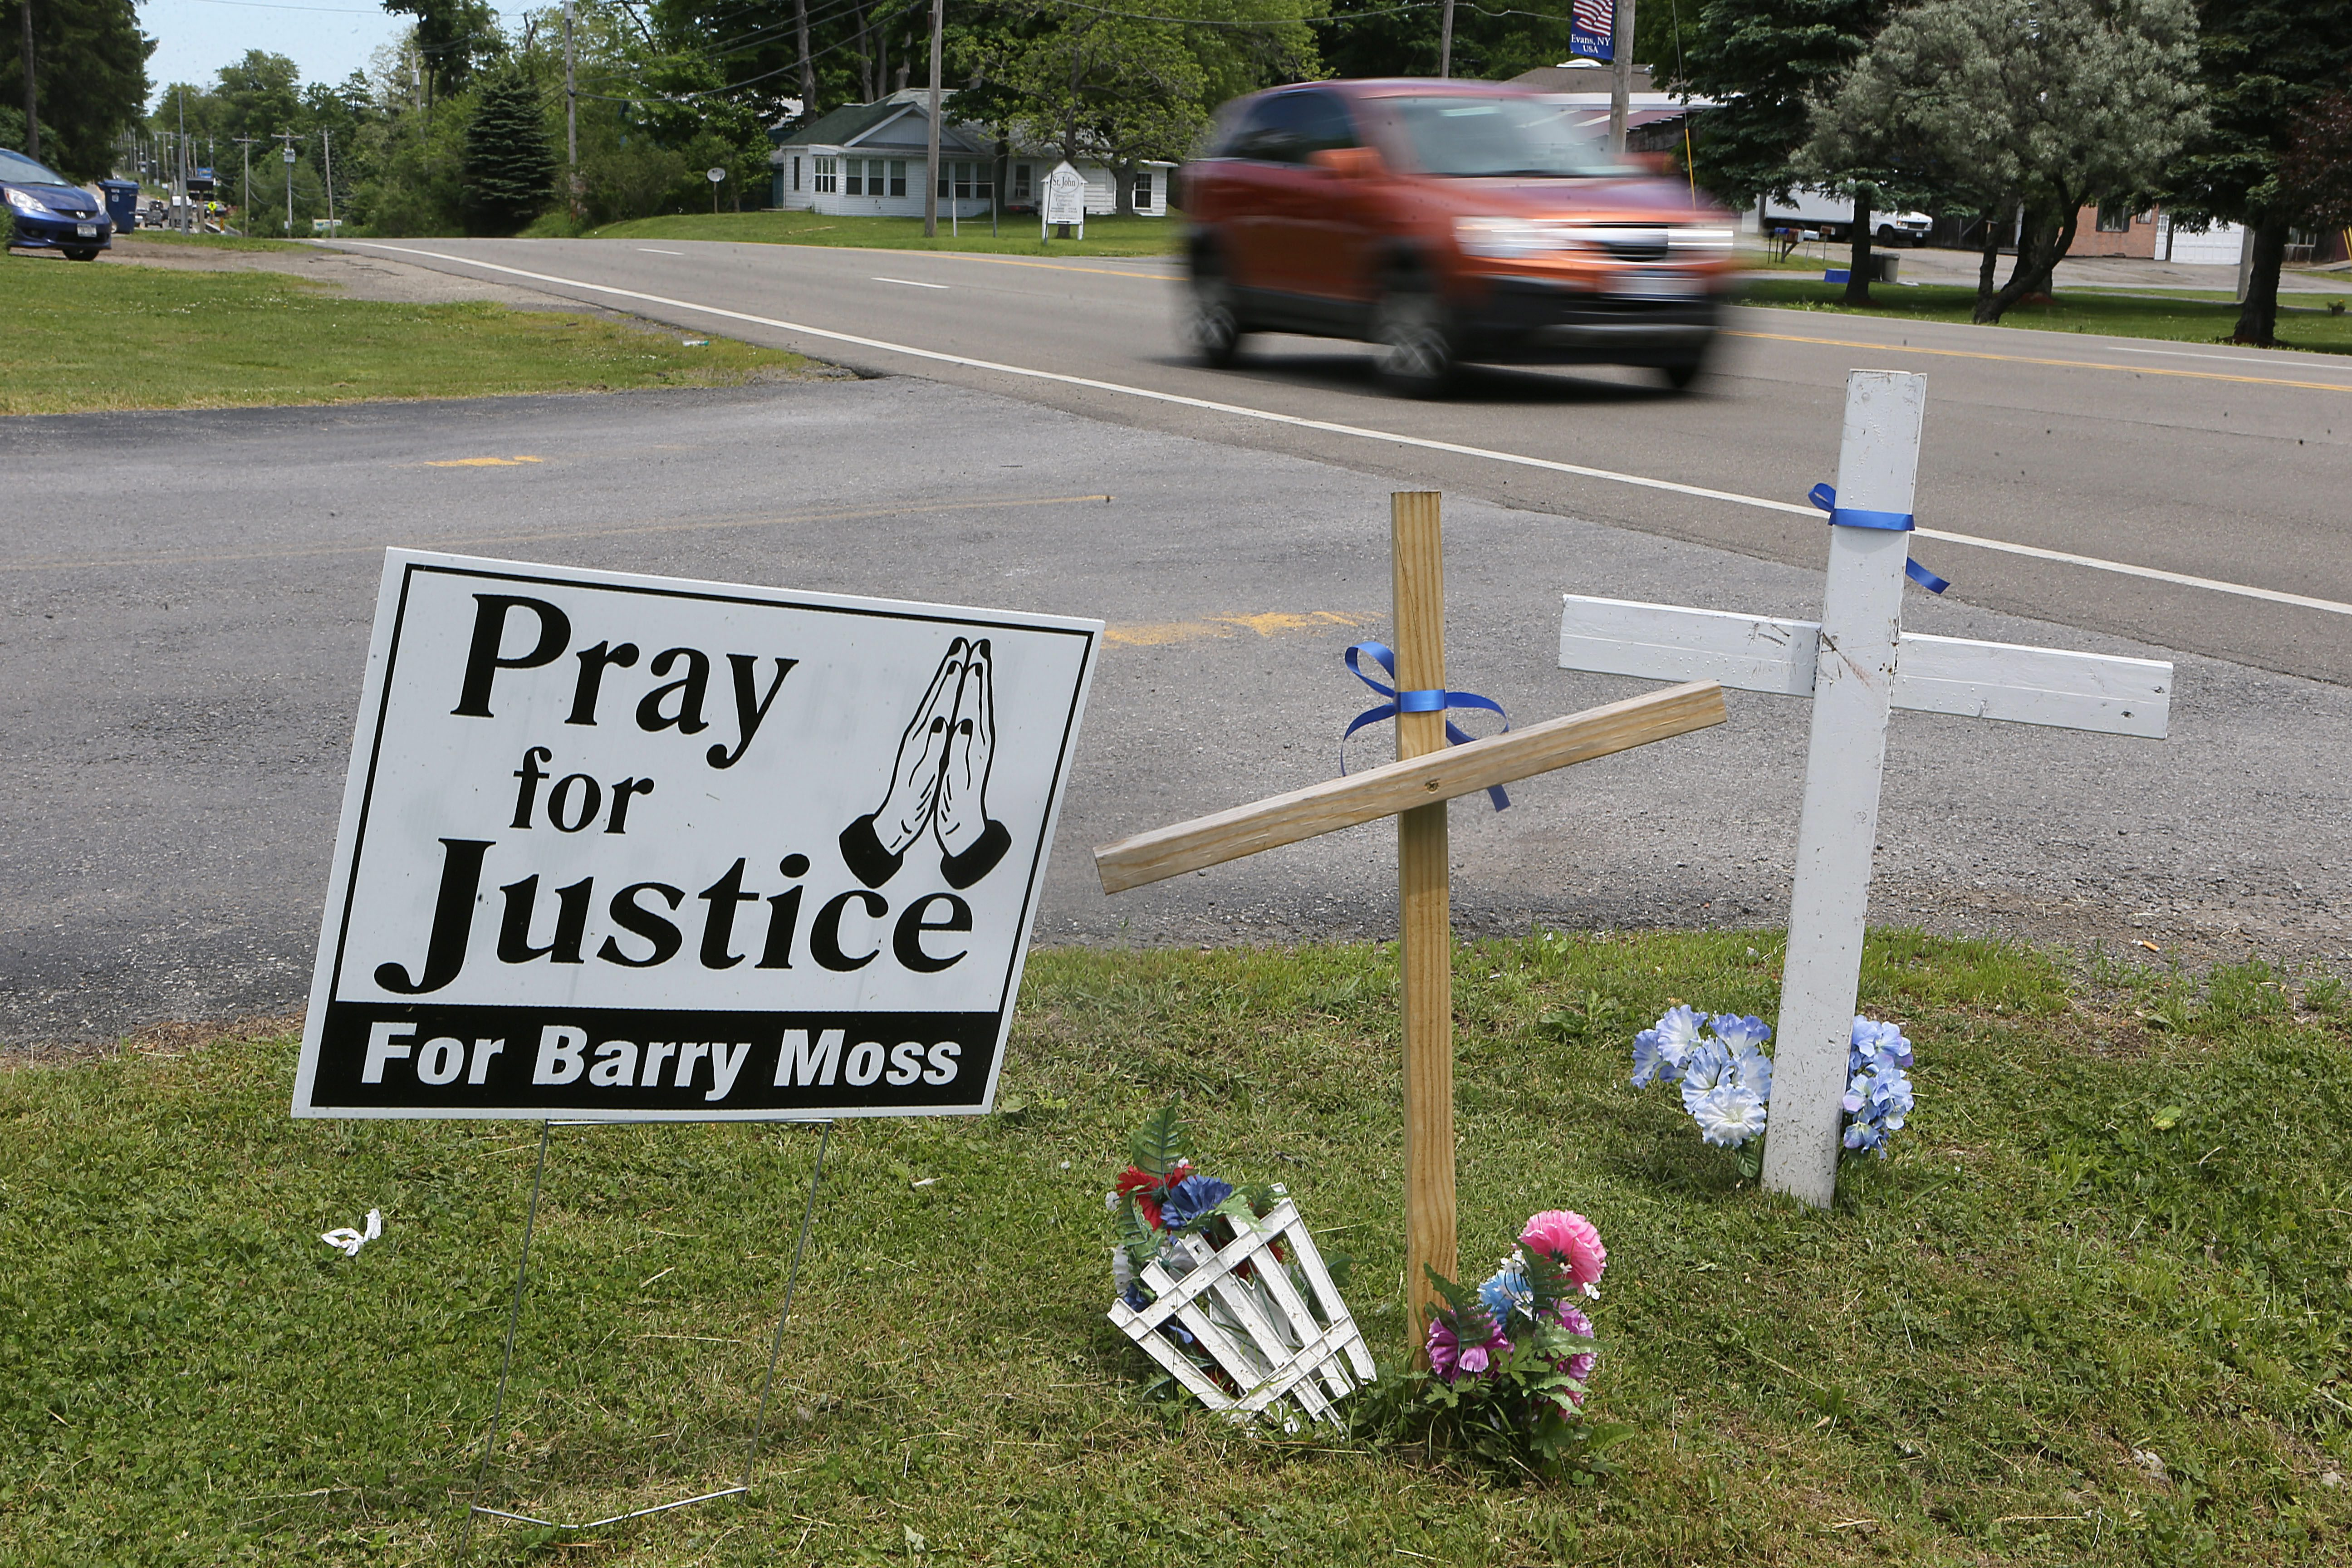 Barry Moss was struck and killed while walking along Route 5 in Evans. (Buffalo News file photo)